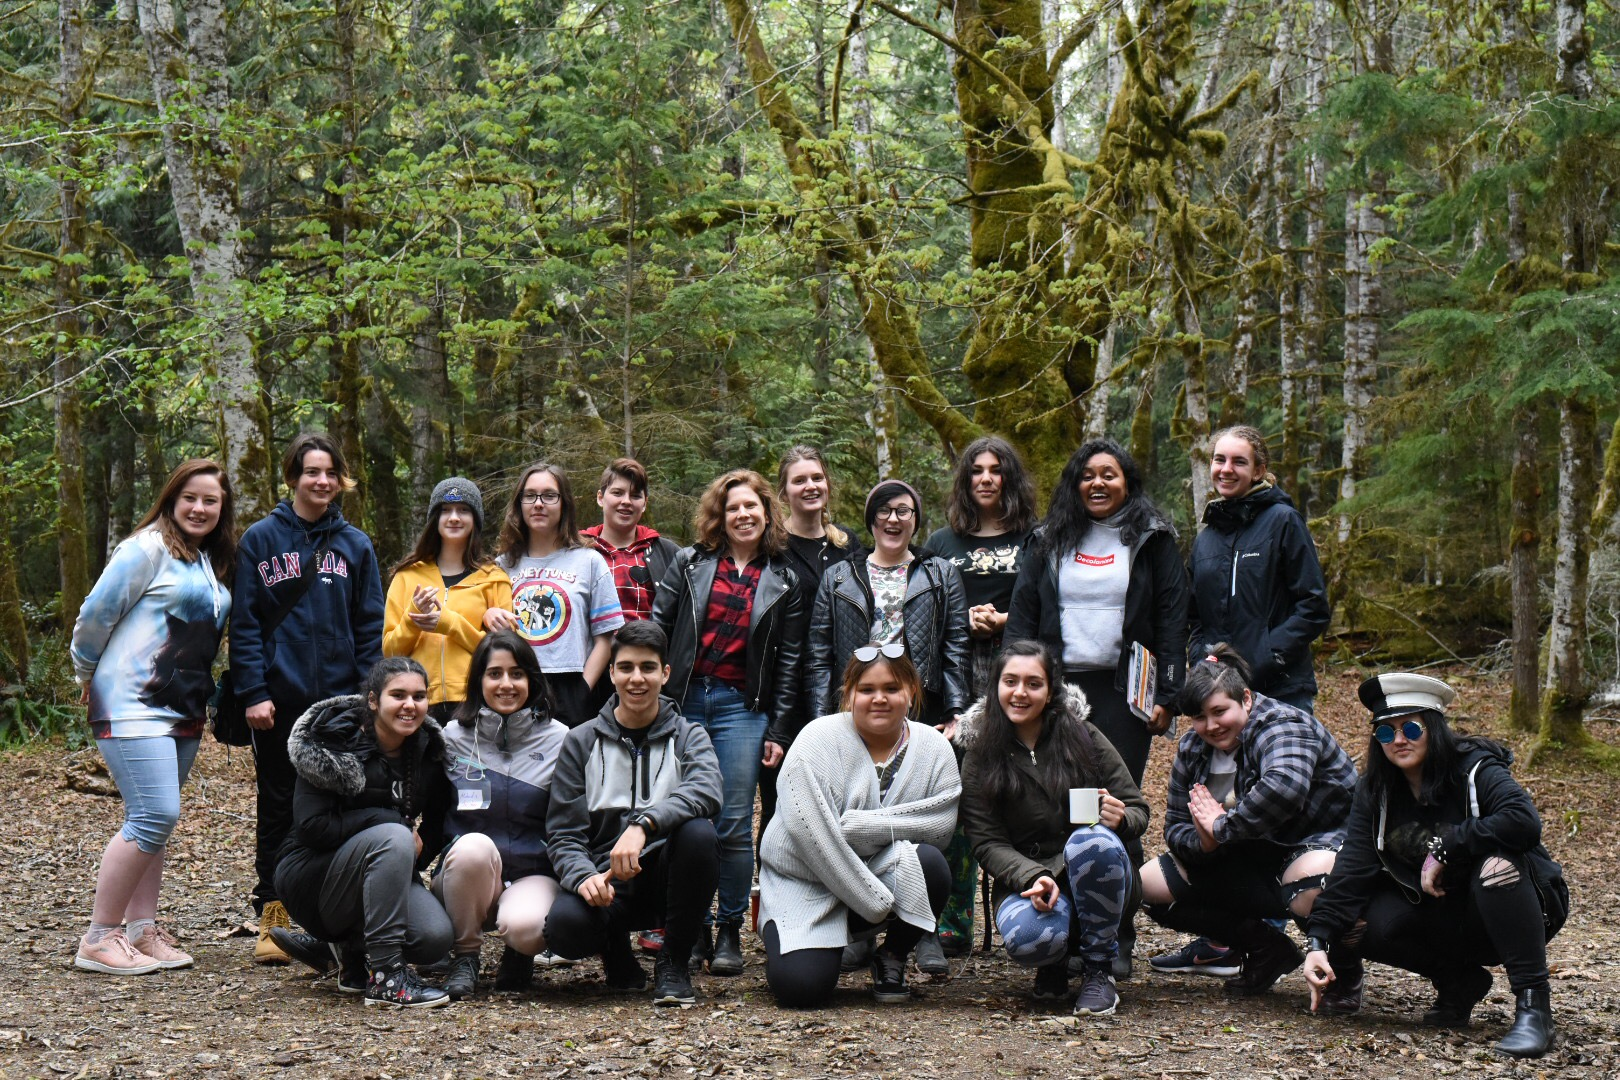 A group of twenty youth and adult staff pose as a group in a lush evergreen forest. They are all smiling at the camera.